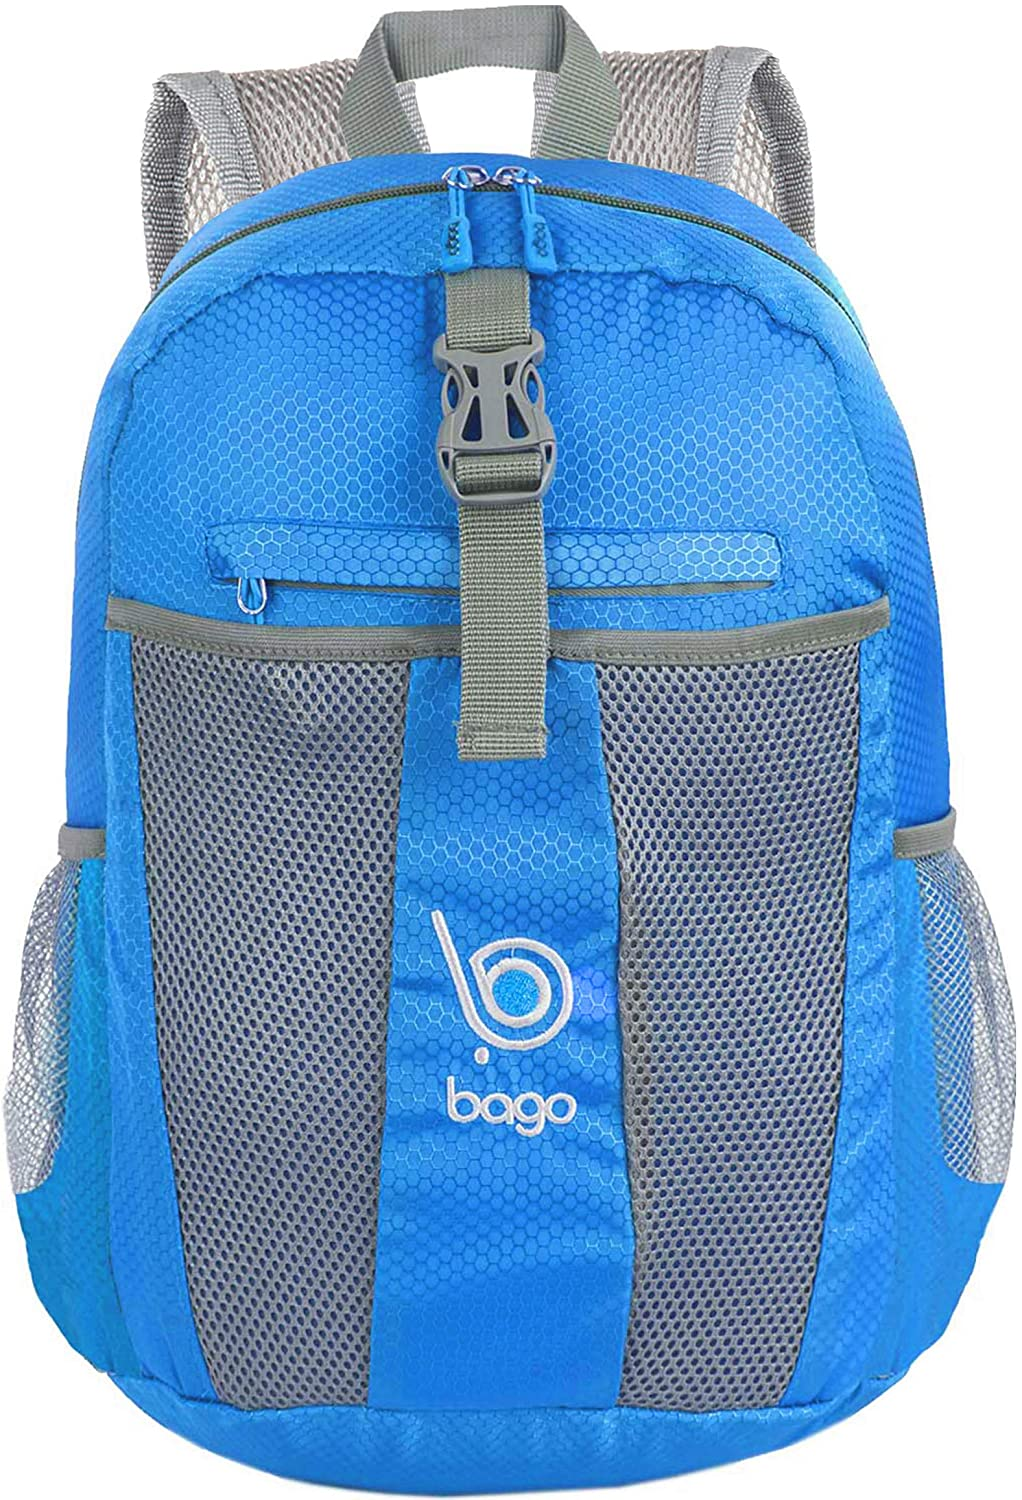 Water Resistant Travel and Hiking Daypack bago 25L Packable Lightweight Backpack